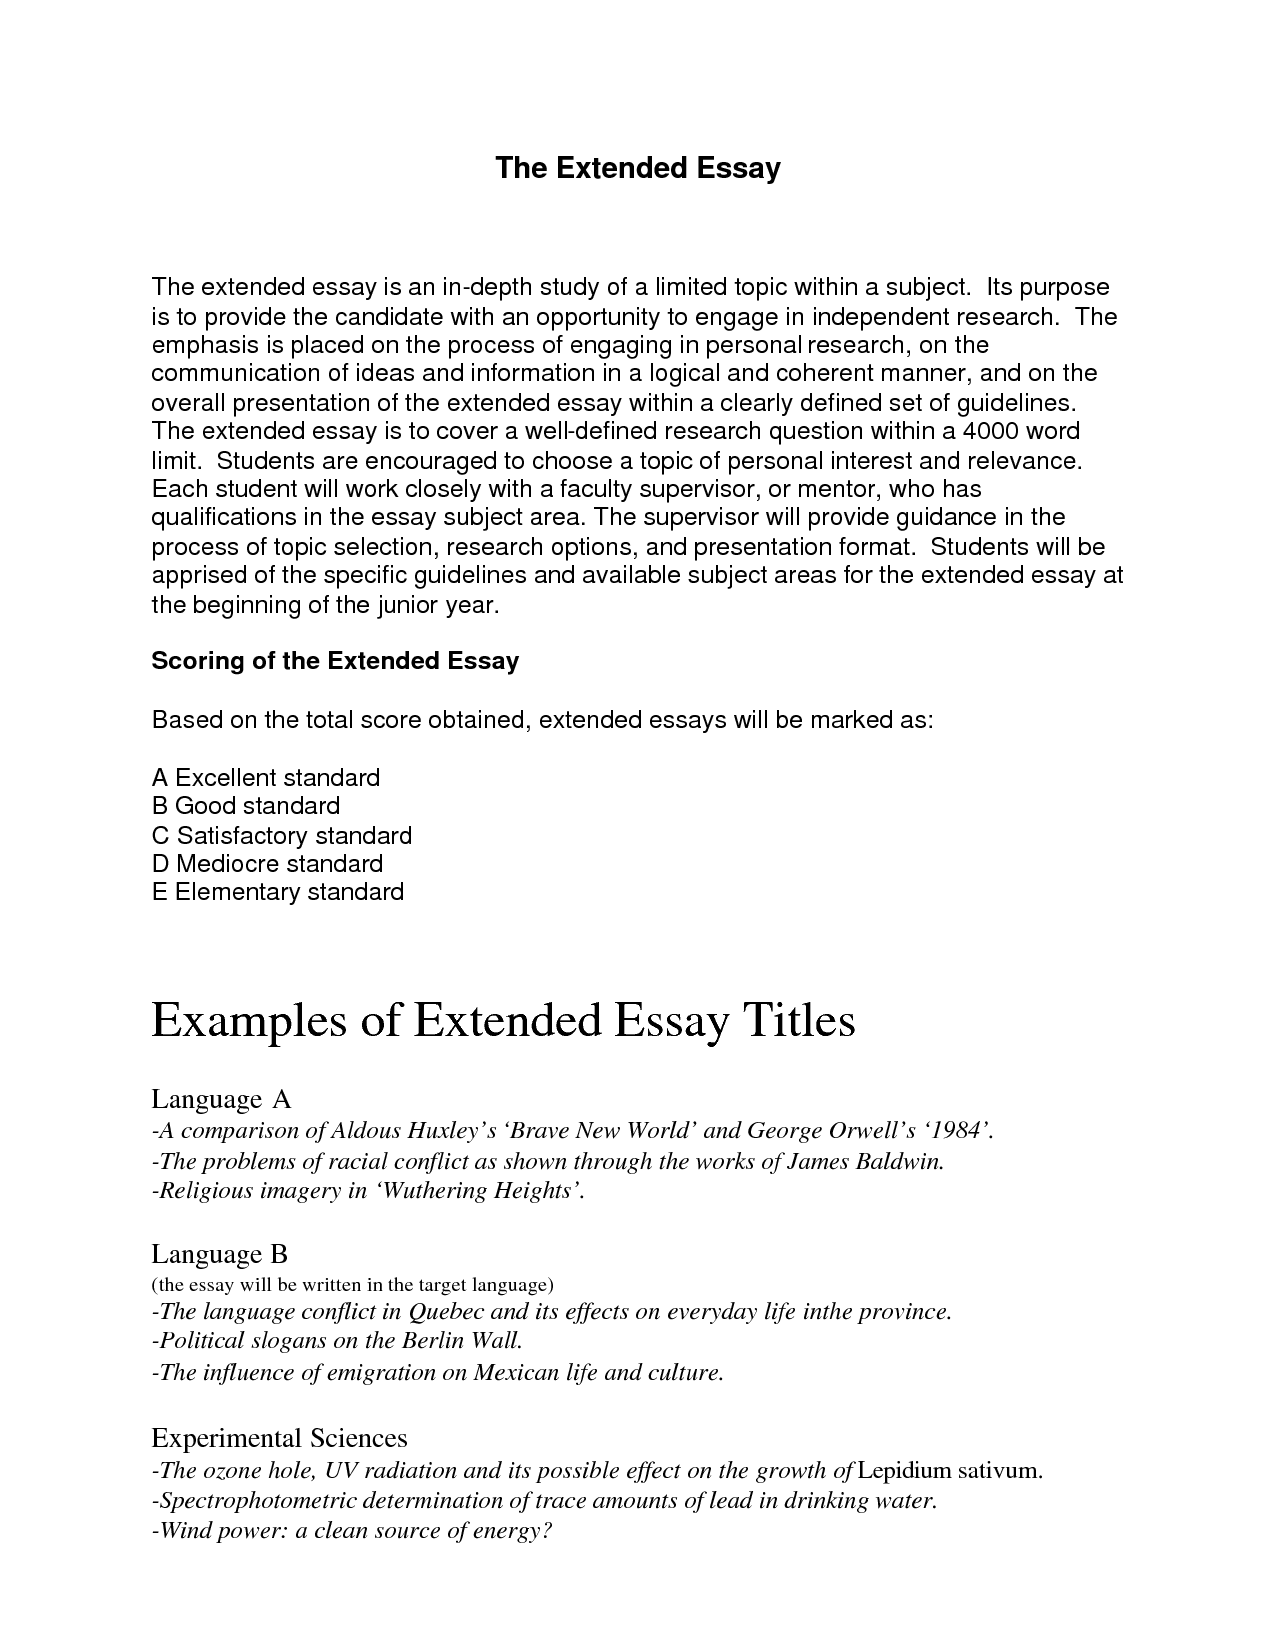 004 Historyxtendedssay Topics Bunch Ideas Of Personal Statement Sample Nutrition Cover Letter Format Columbia Spectacular How To Write Awesome History Extended Essay Questions Ib Full